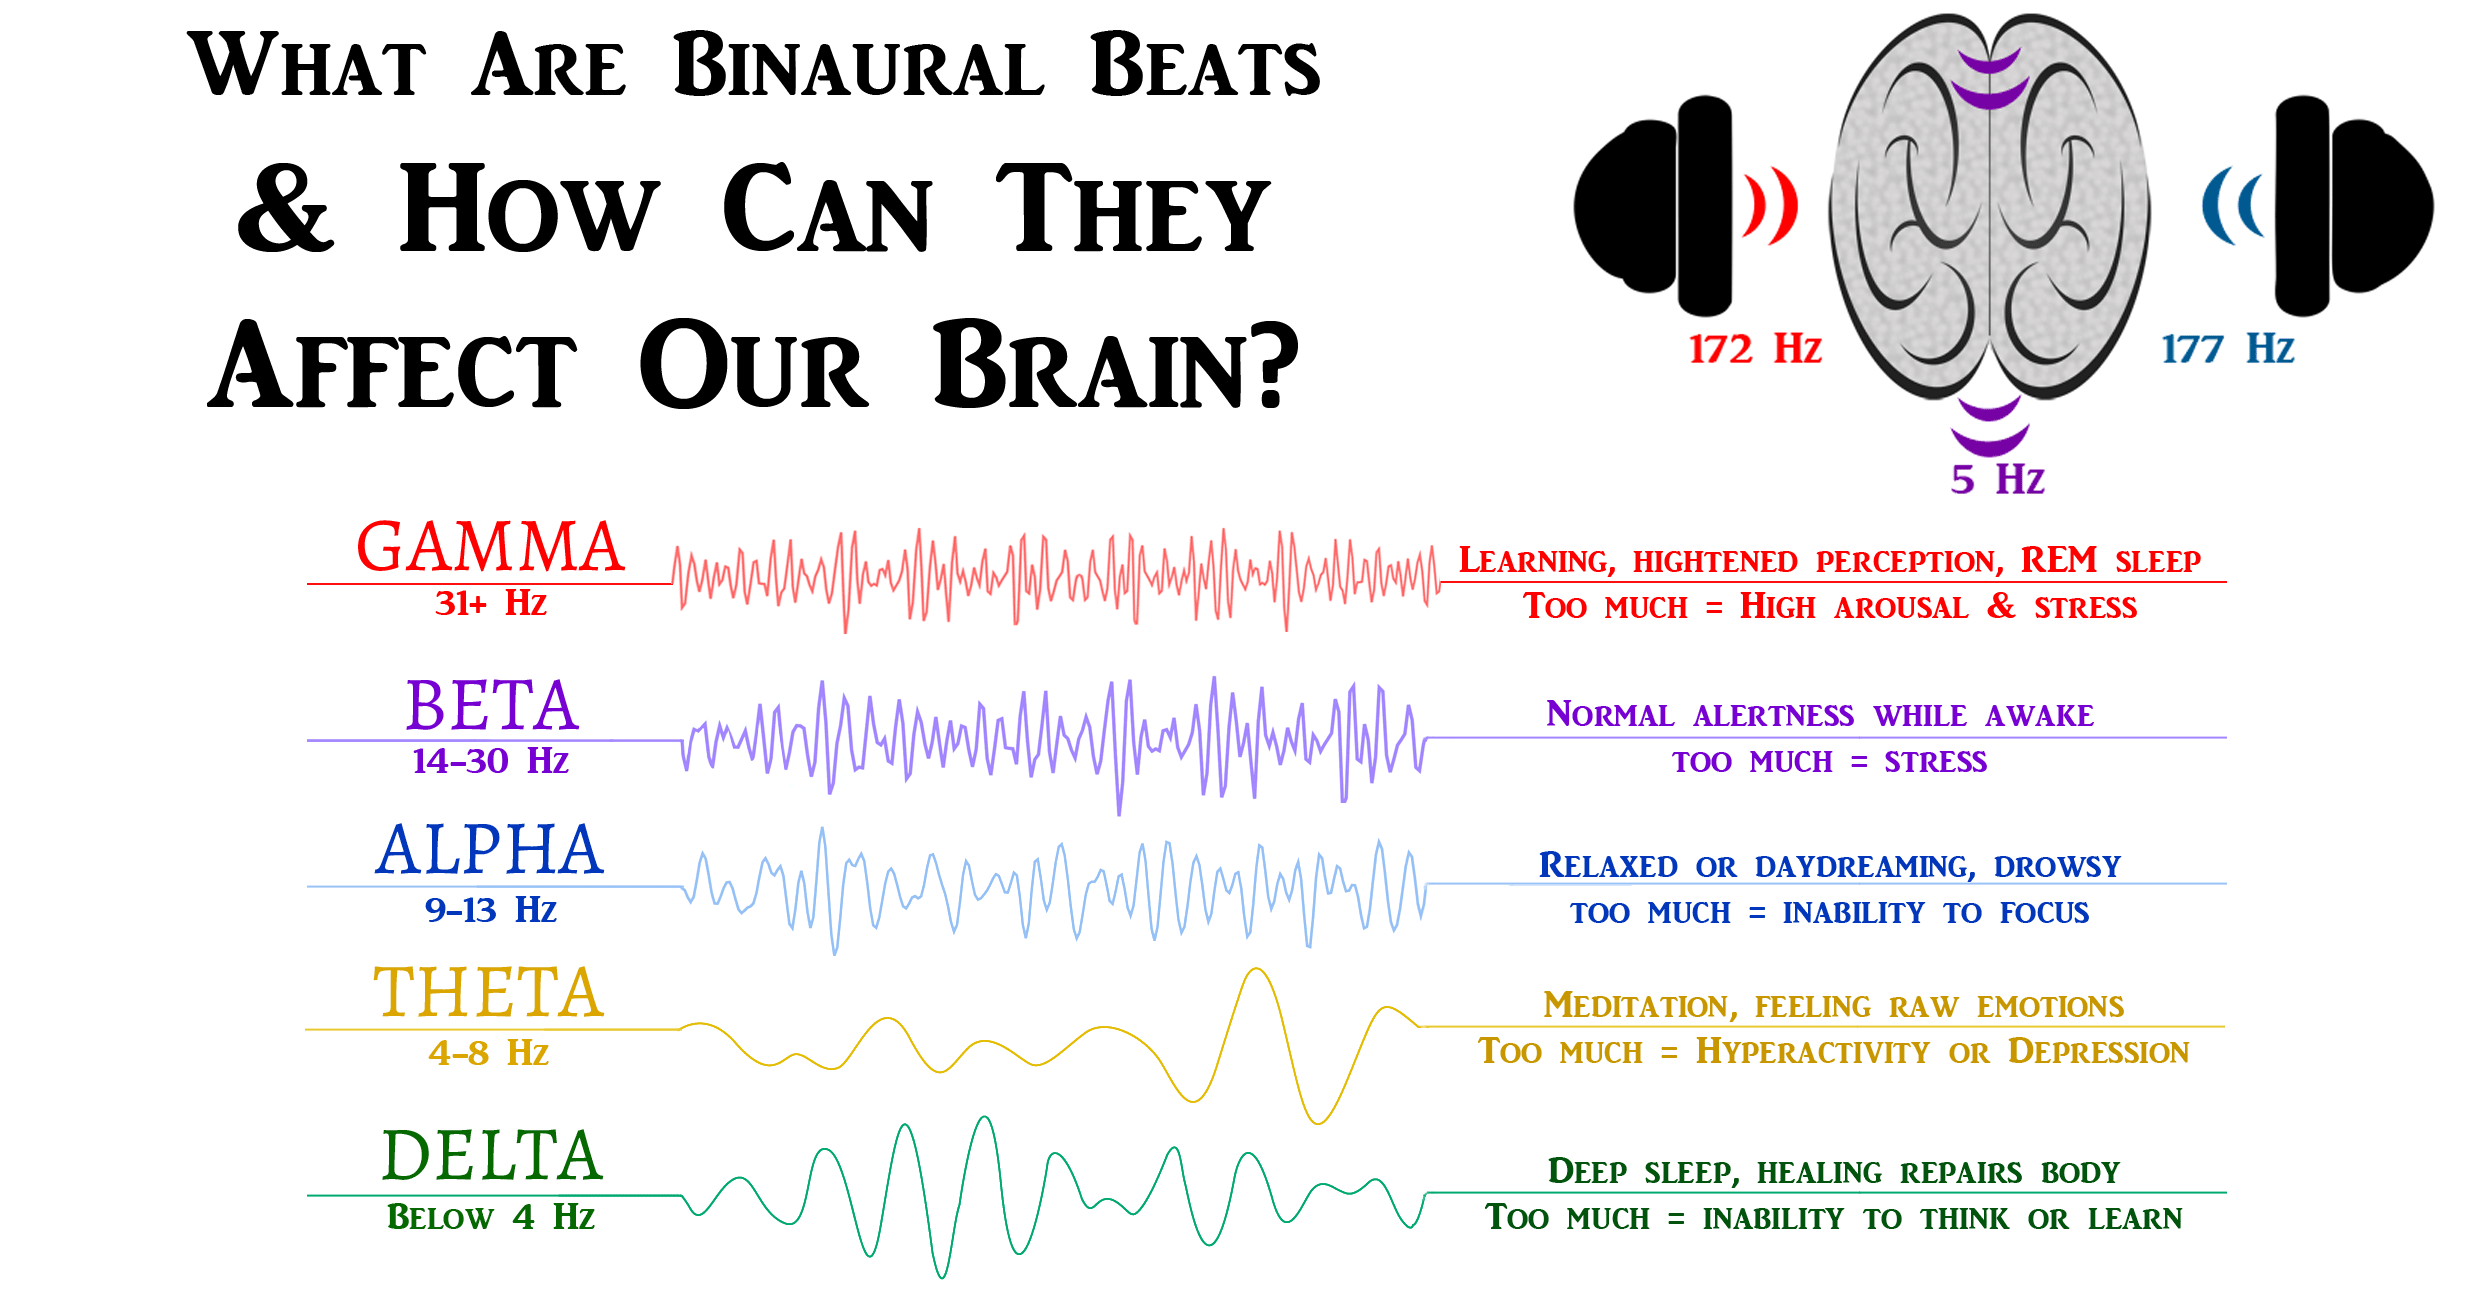 What Are Binaural Beats & How Can They Affect Our Brain? ~